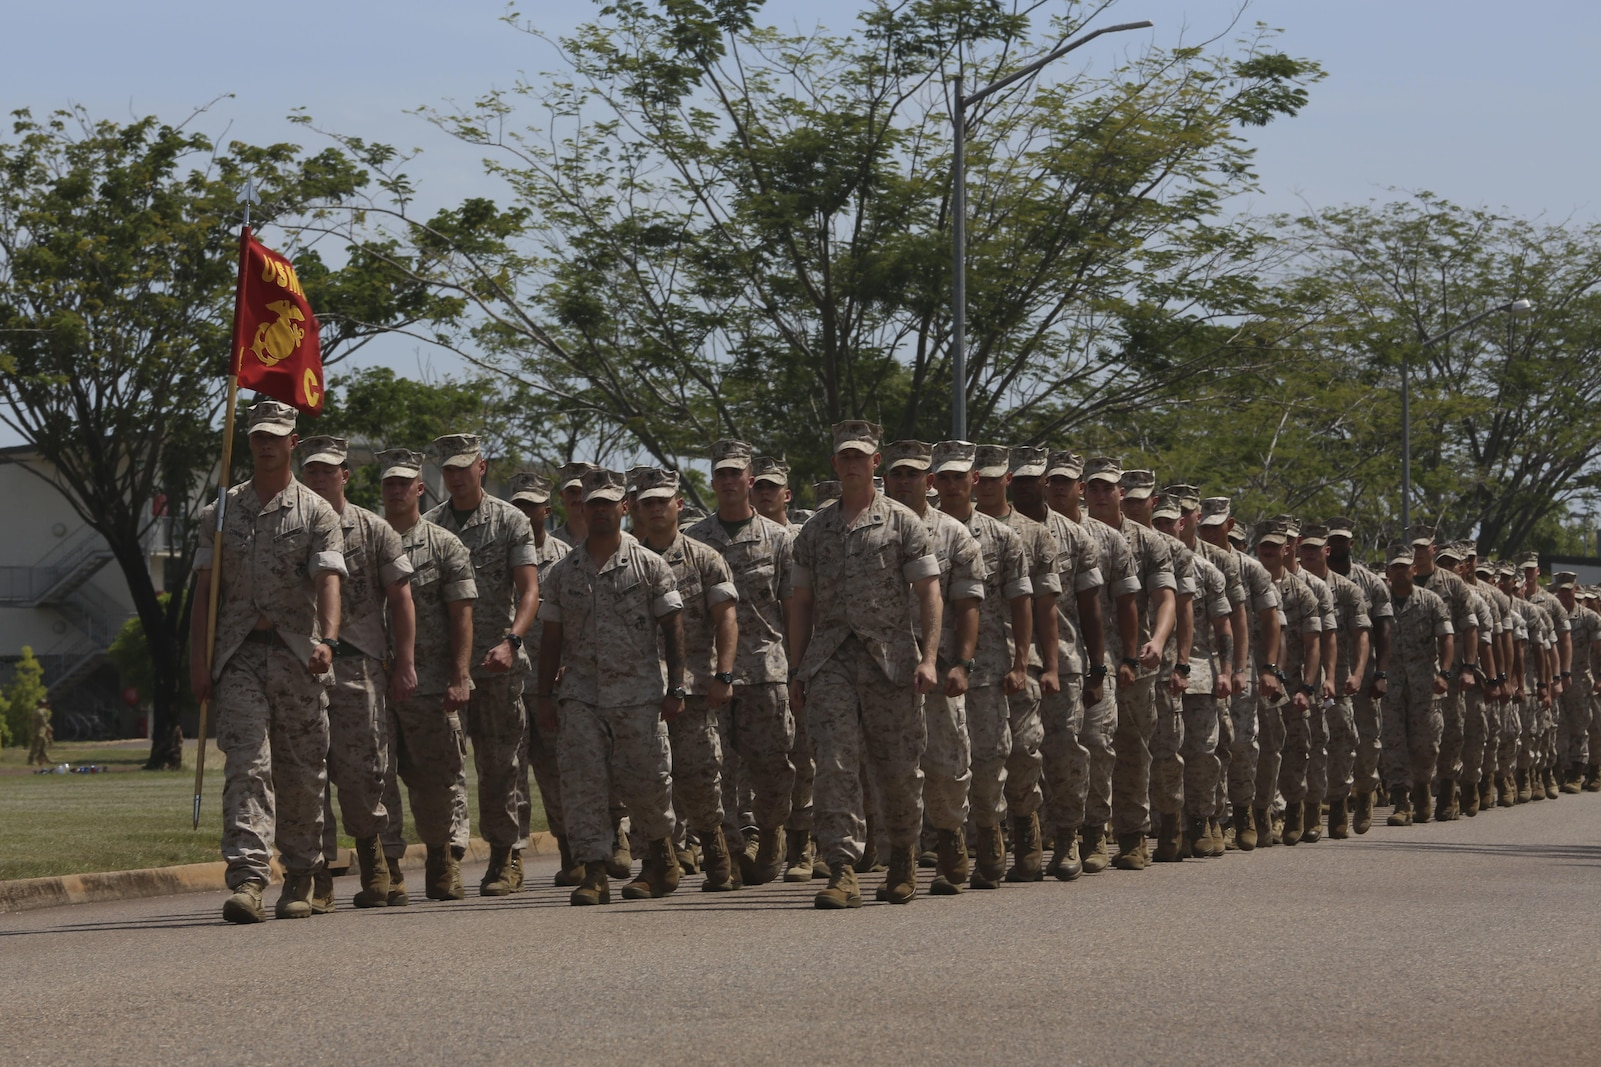 "U.S. Marines with Company C, 1st Battalion, 4th Marine Regiment, Marine Rotational Force – Darwin, march onto the Brigade Parade Ground for a ""Welcome to Country"" ceremony April 22 at Robertson Barracks, Palmerston, Australia. Brigadier Mick Ryan, commander, 1st Brigade, Australian Army, Australian Defence Force, spoke about the relationship between the Marines and Australians during the MRF-D deployment, and introduced Marines to aboriginal culture by inviting the Kenbi Dancers to conduct a welcoming performance. MRF-D is the deployment of U.S. Marines to Darwin and the Northern Territory, for approximately six months at a time, where they will conduct exercises and training on a rotational basis with the ADF. (U.S. Marine Corps photo by Lance Cpl. Kathryn Howard/Released)"